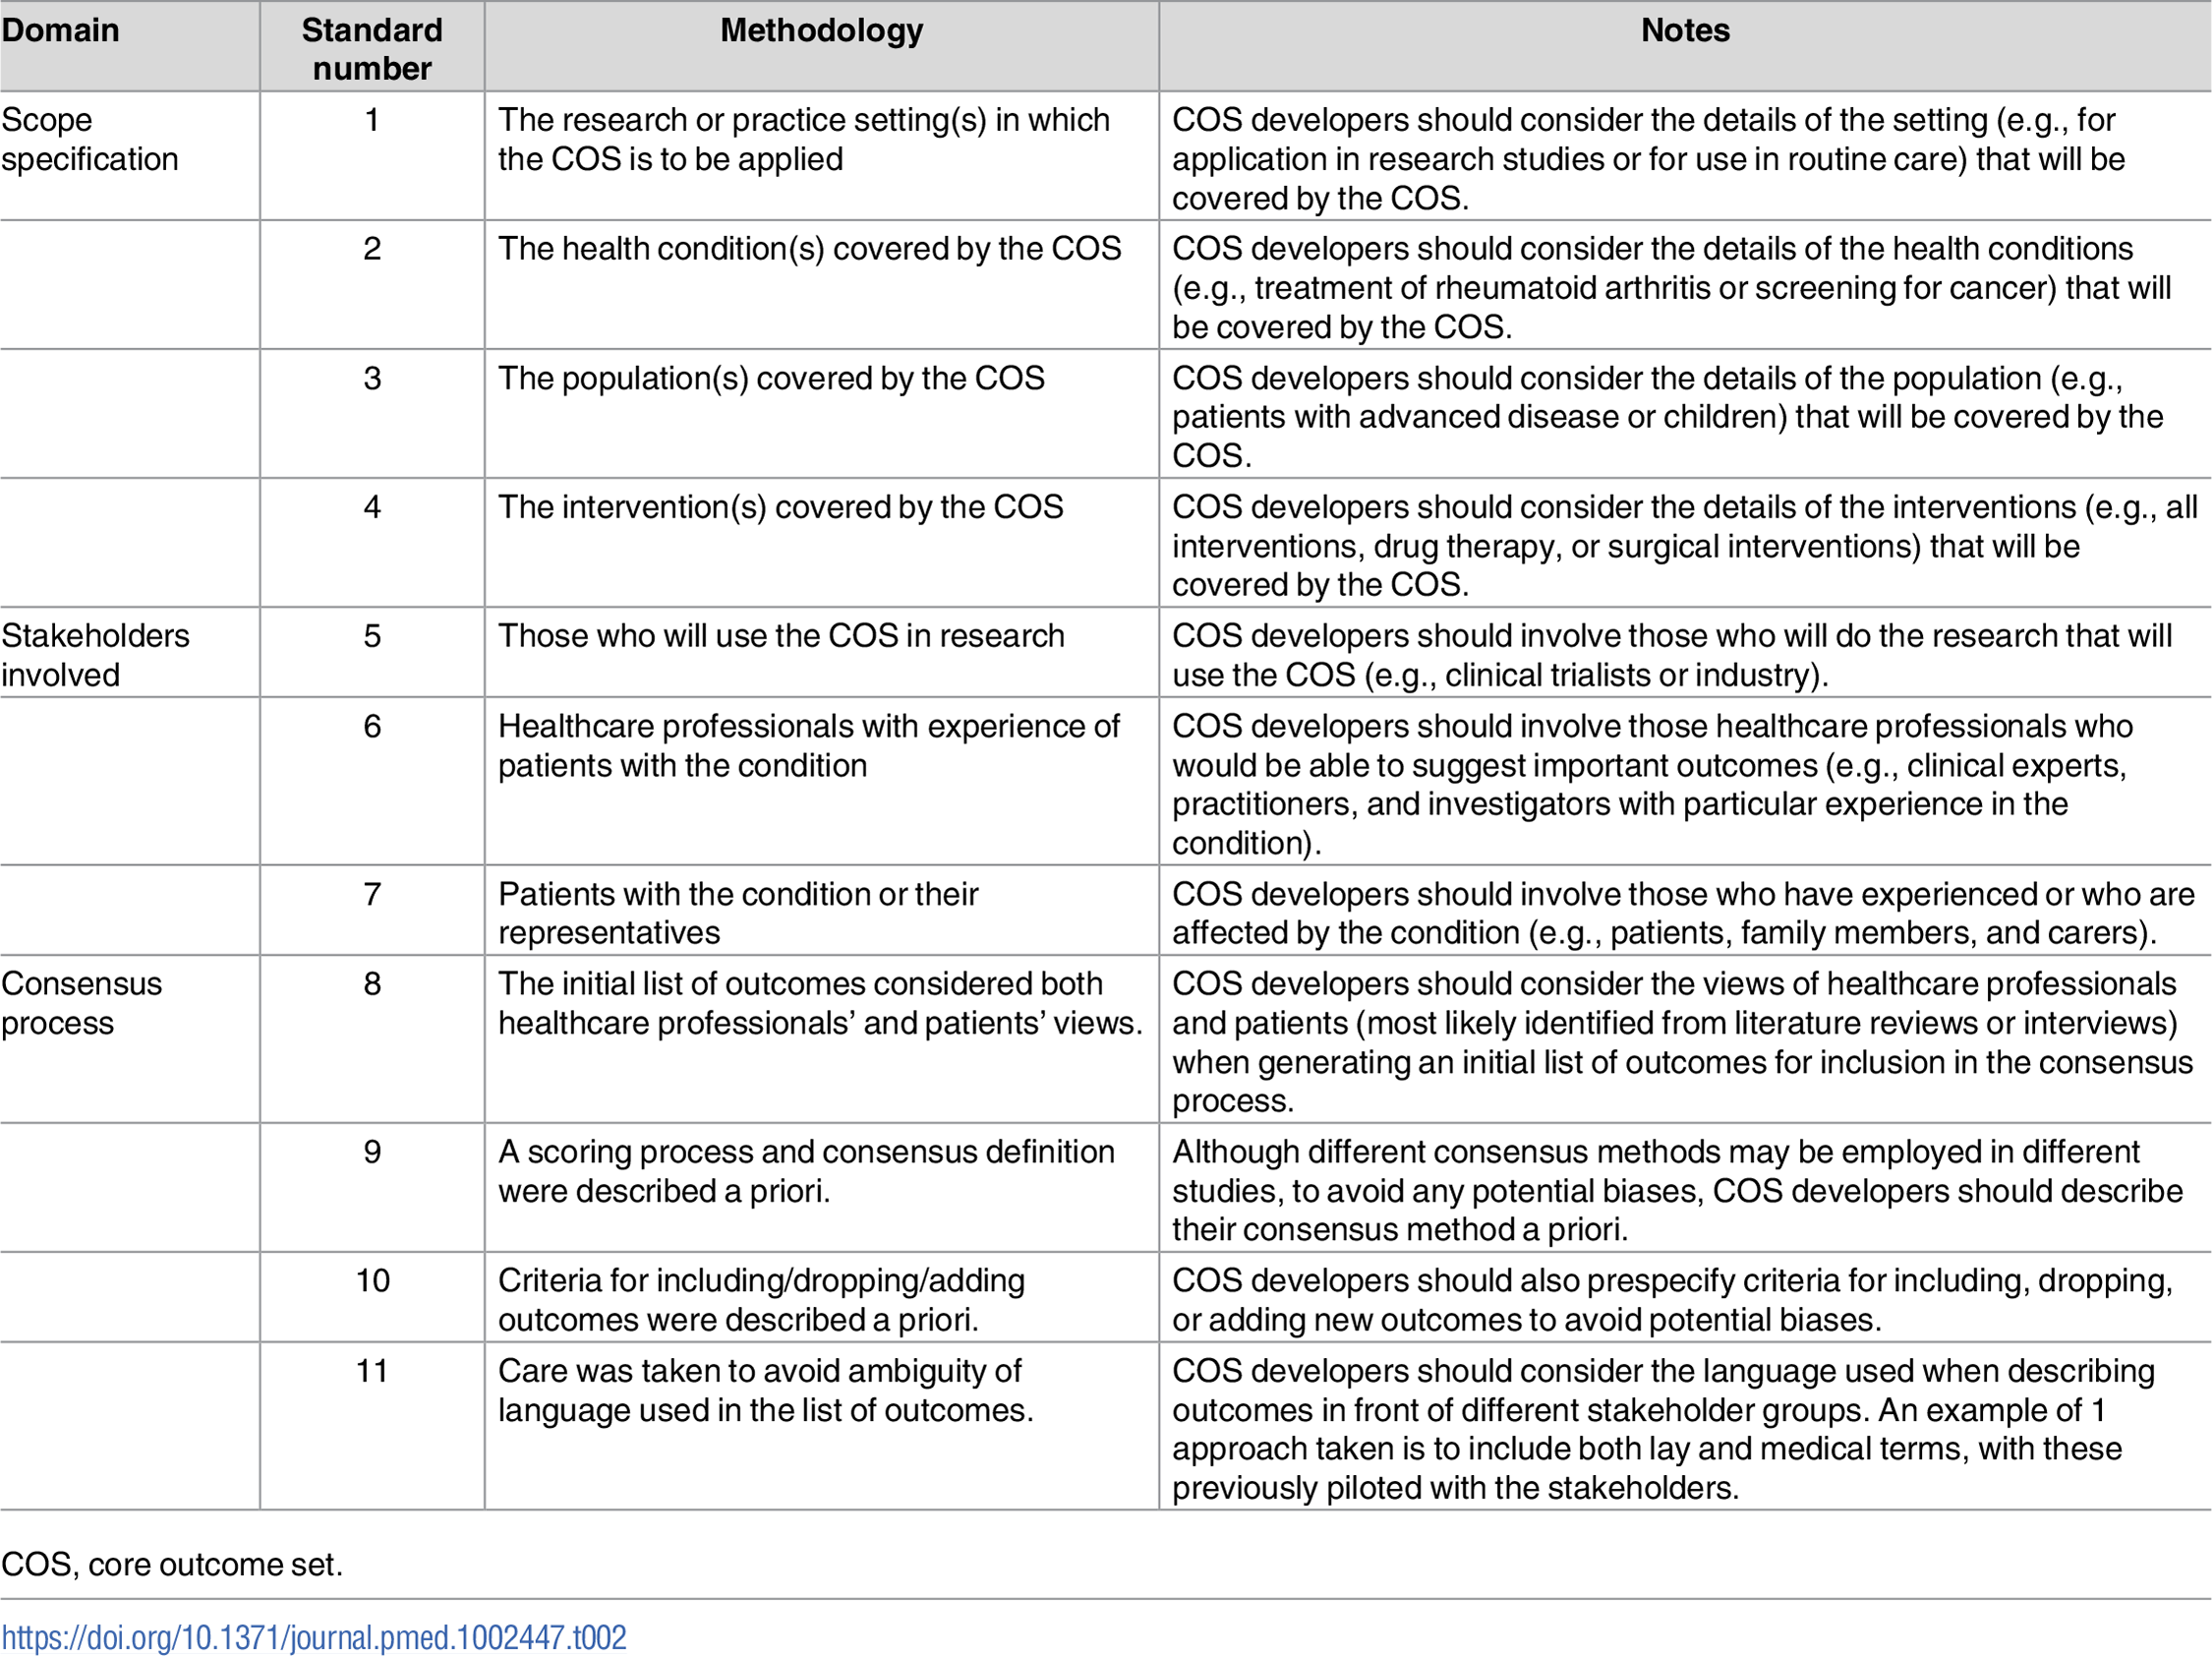 Core Outcome Set—STAndards for Development: The COS-STAD recommendations.